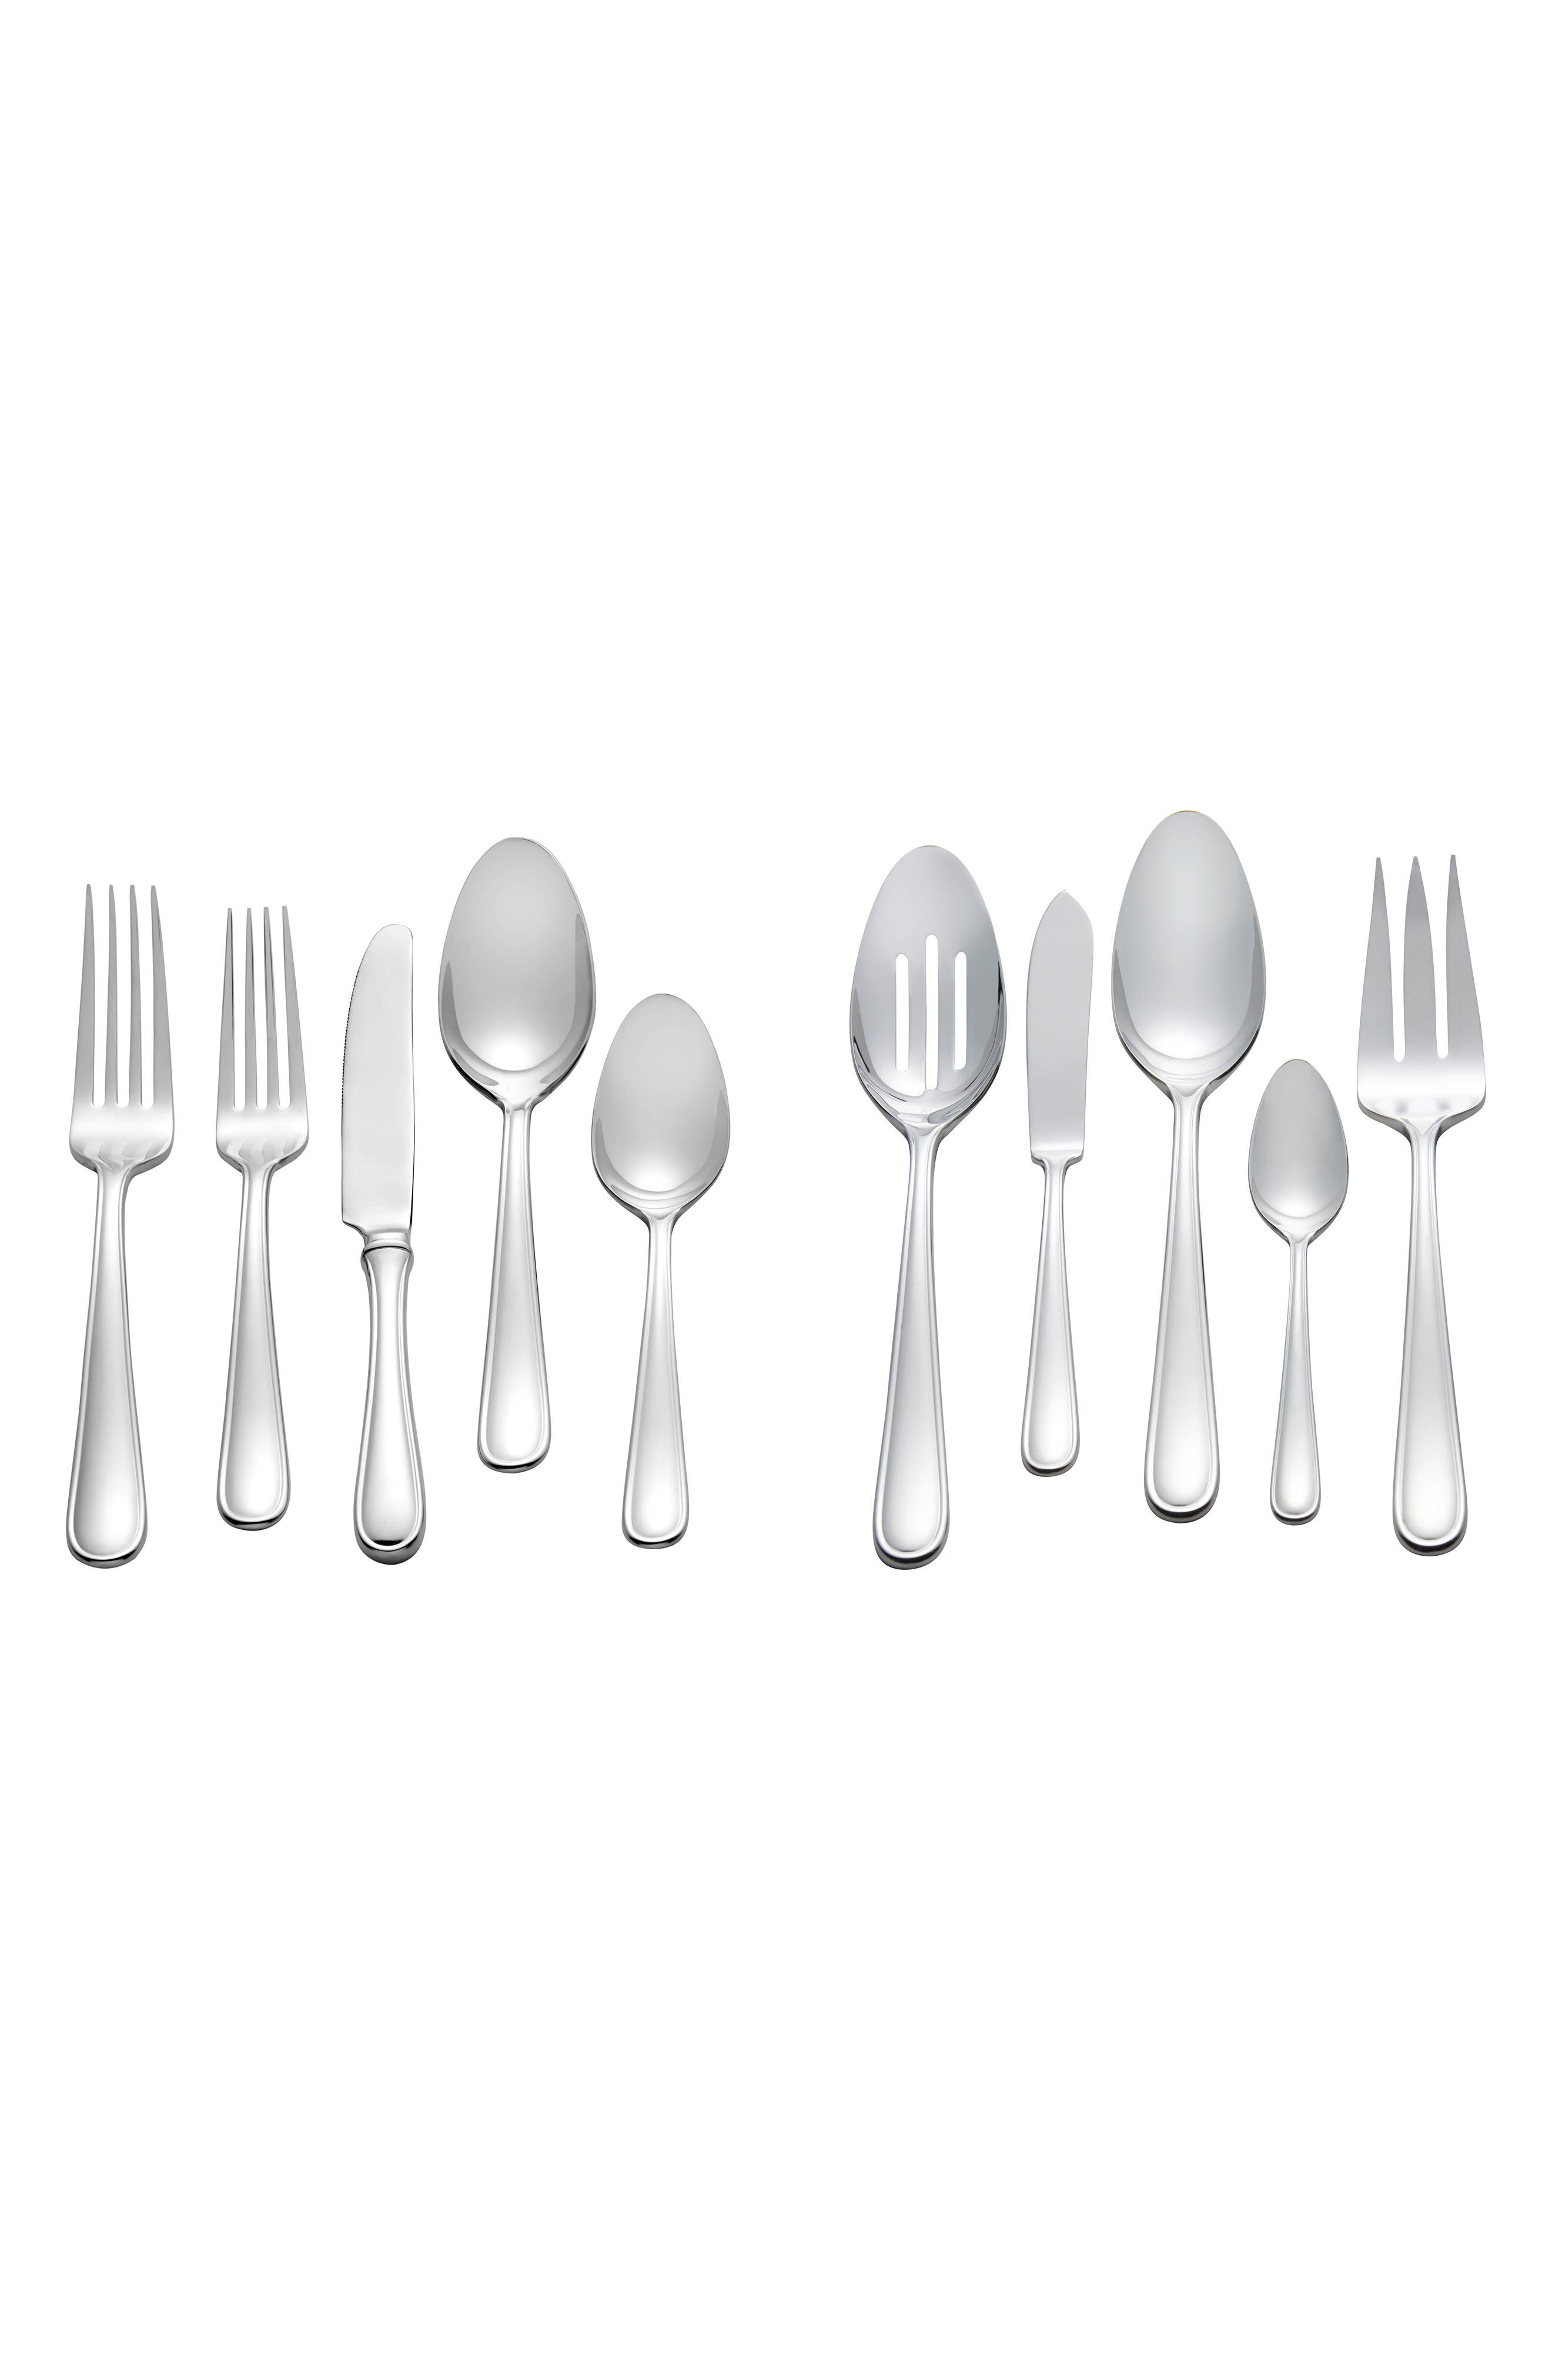 Vera Wang x Wedgwood Cushion 45-Piece Flatware Set